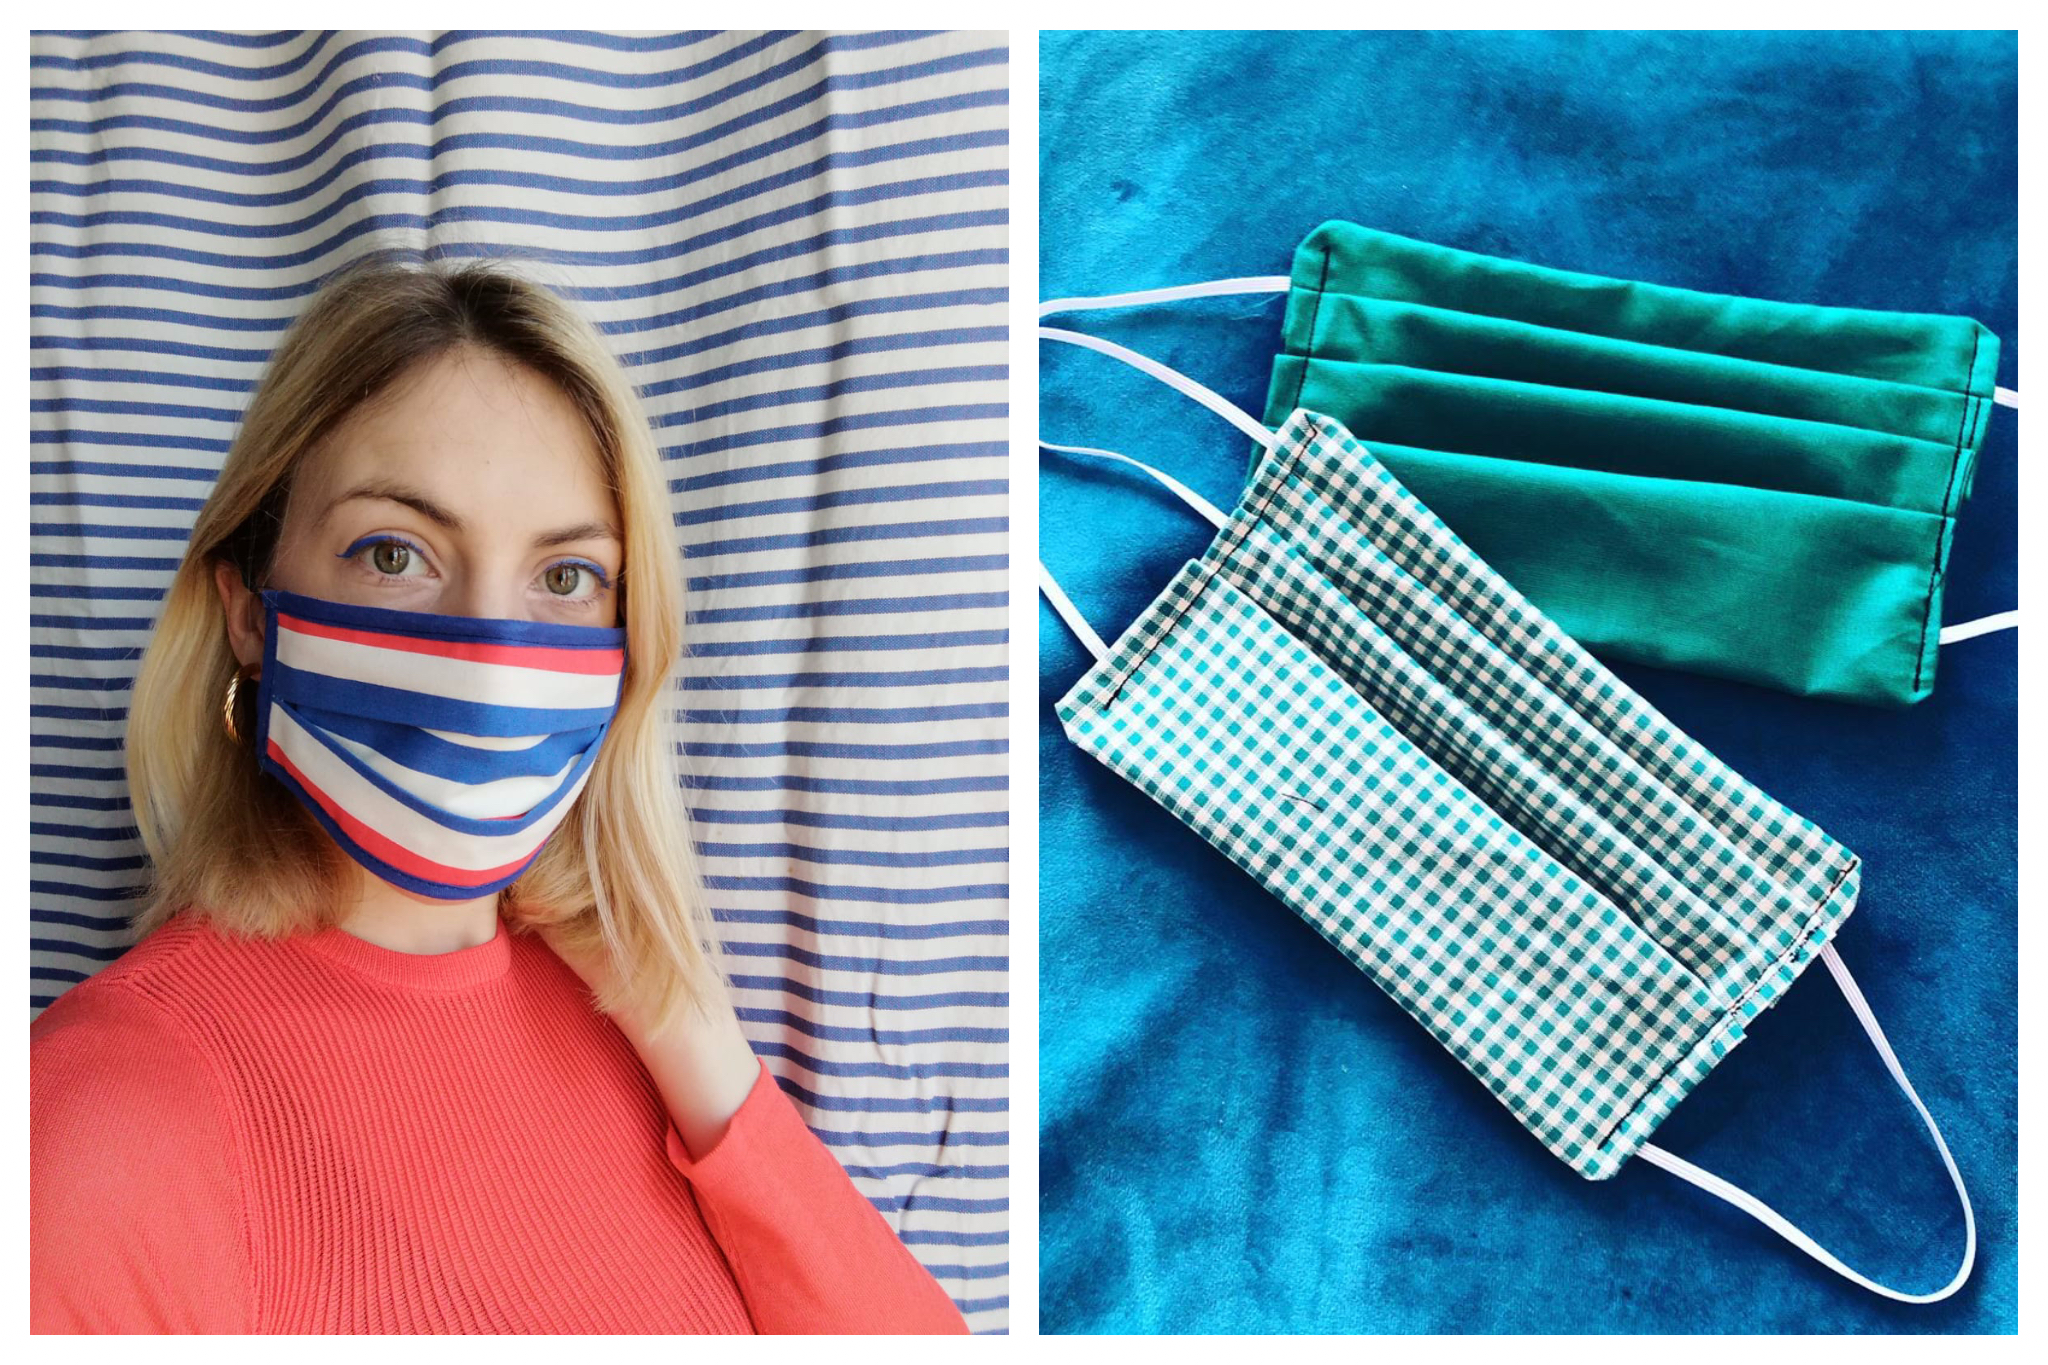 Left: A blonde woman wears a blue white and red face mask. Right: a gingham green and white face mask and a plain emerald green face mask on a blue velvet background.